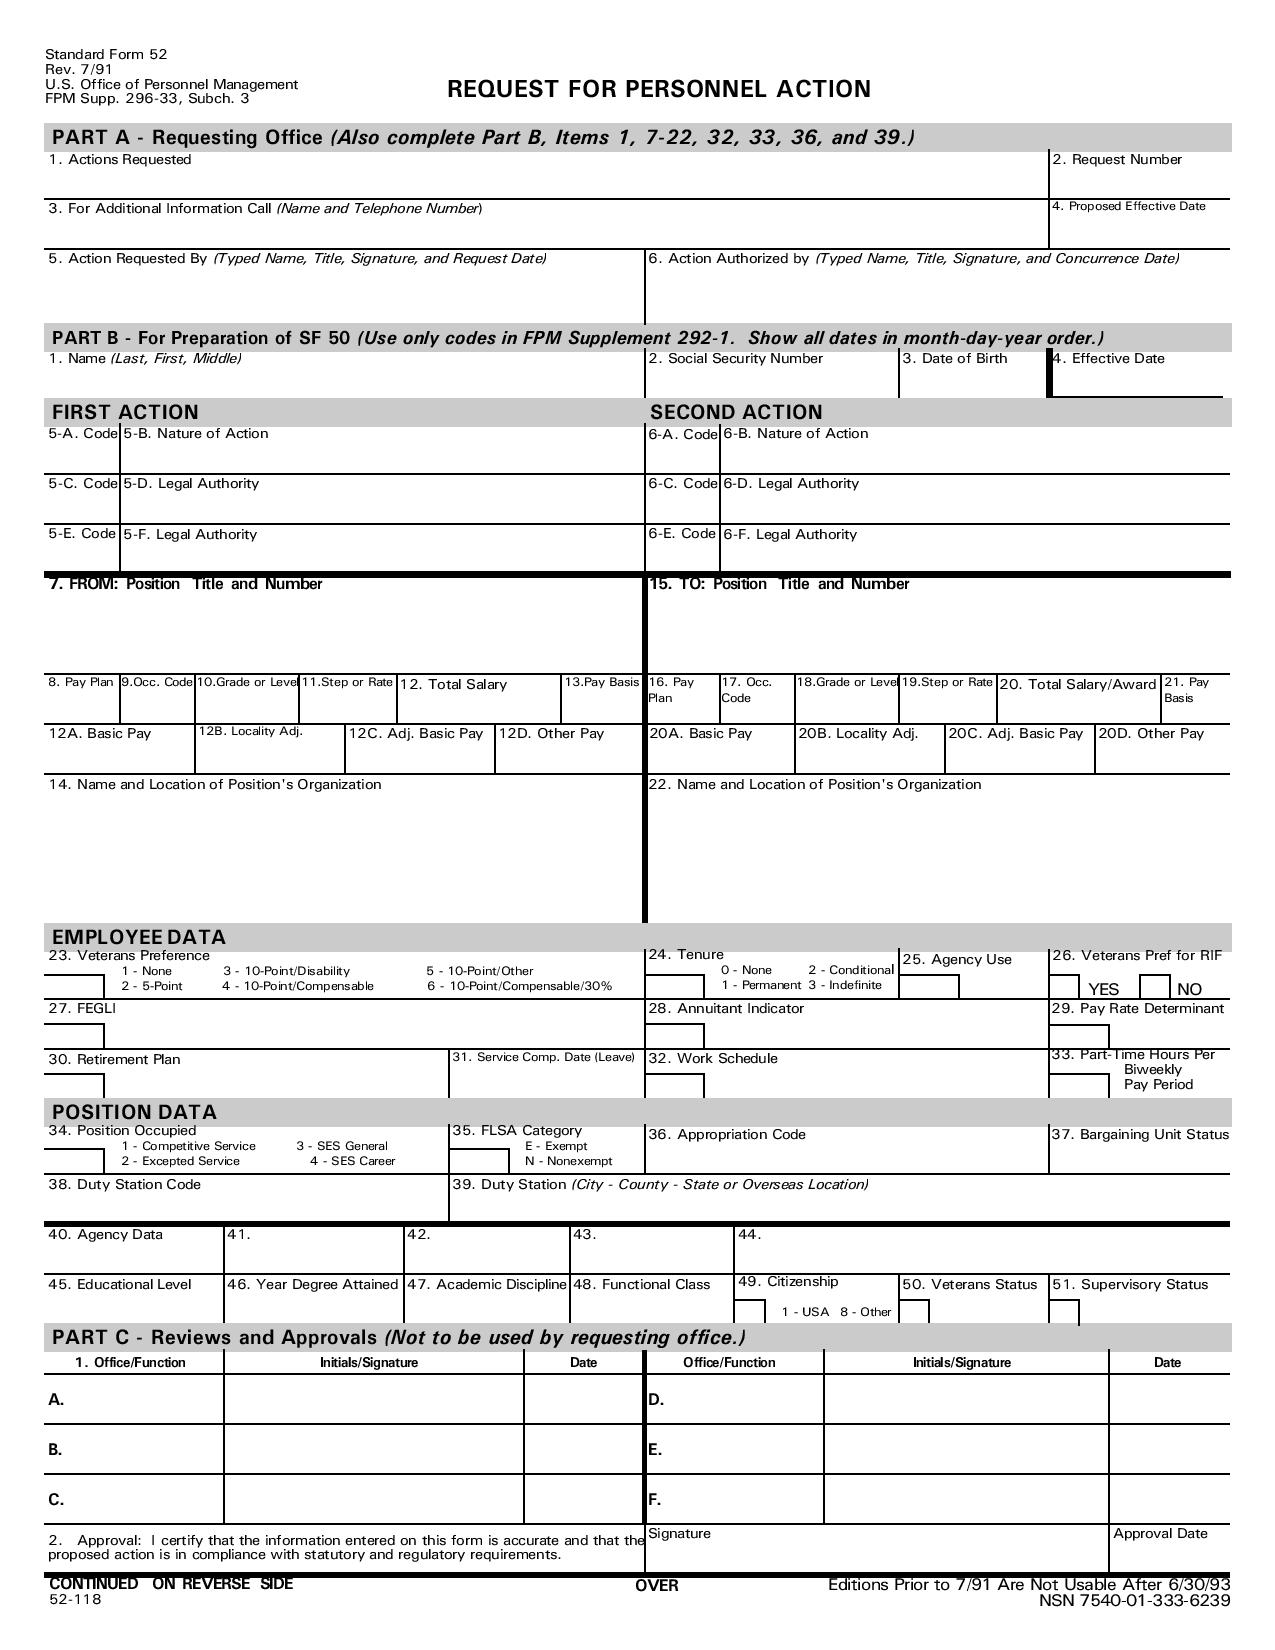 request for personnel action form page 001